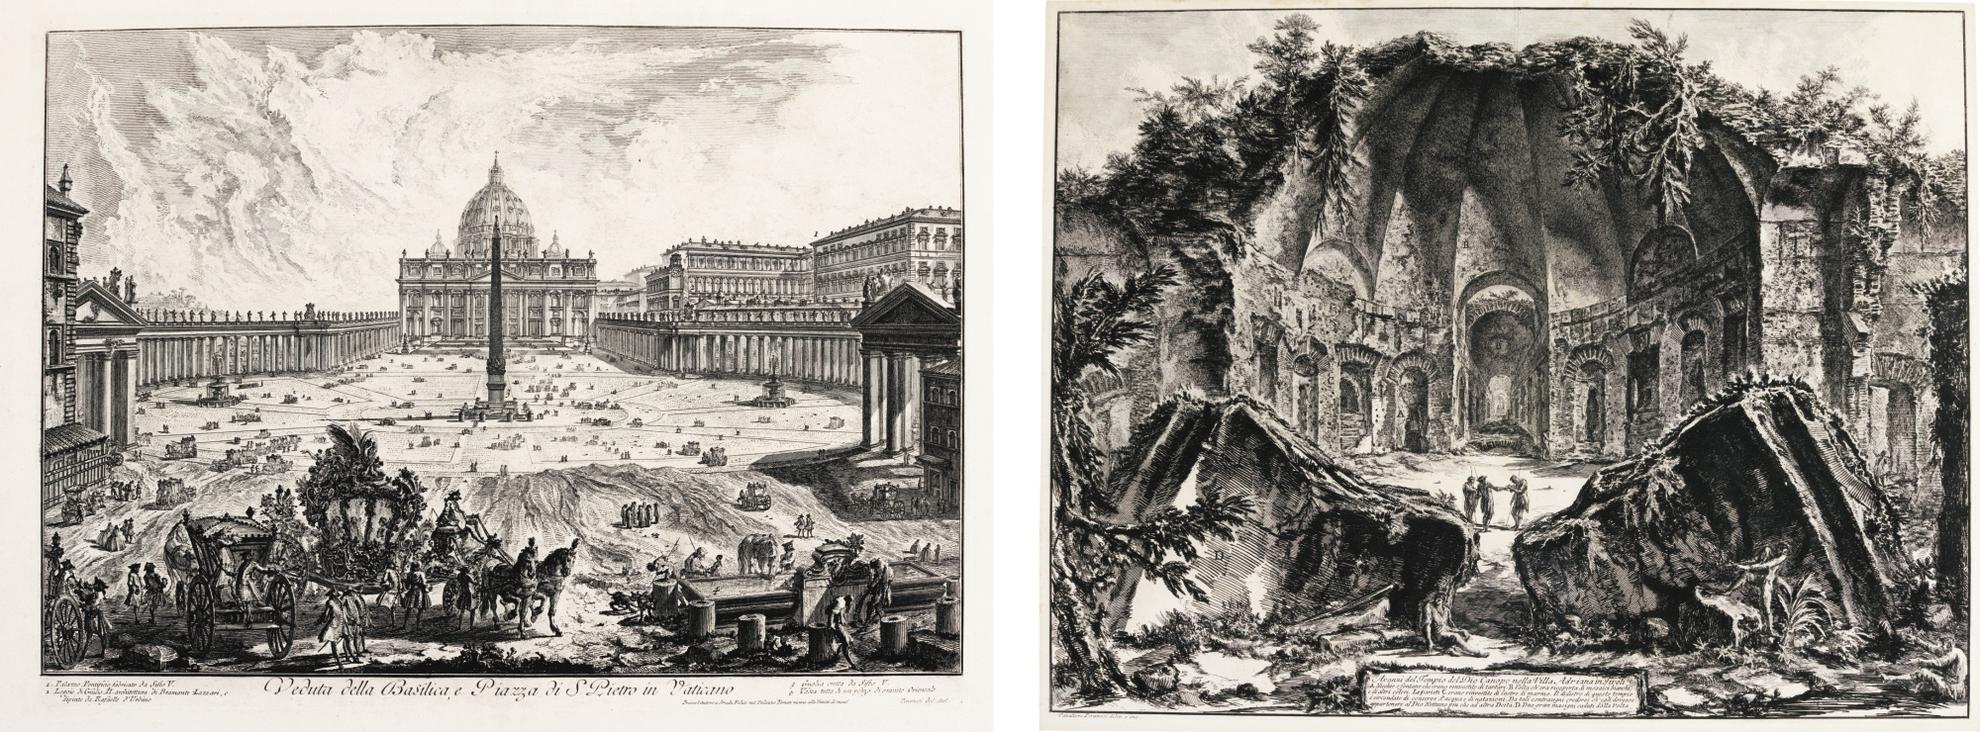 Giovanni Battista Piranesi-St. Peters, With Forecourt And Colonnades Fountain In Foreground; And Hadrians Villa: The Canopus (Hind 3, 90)-1768